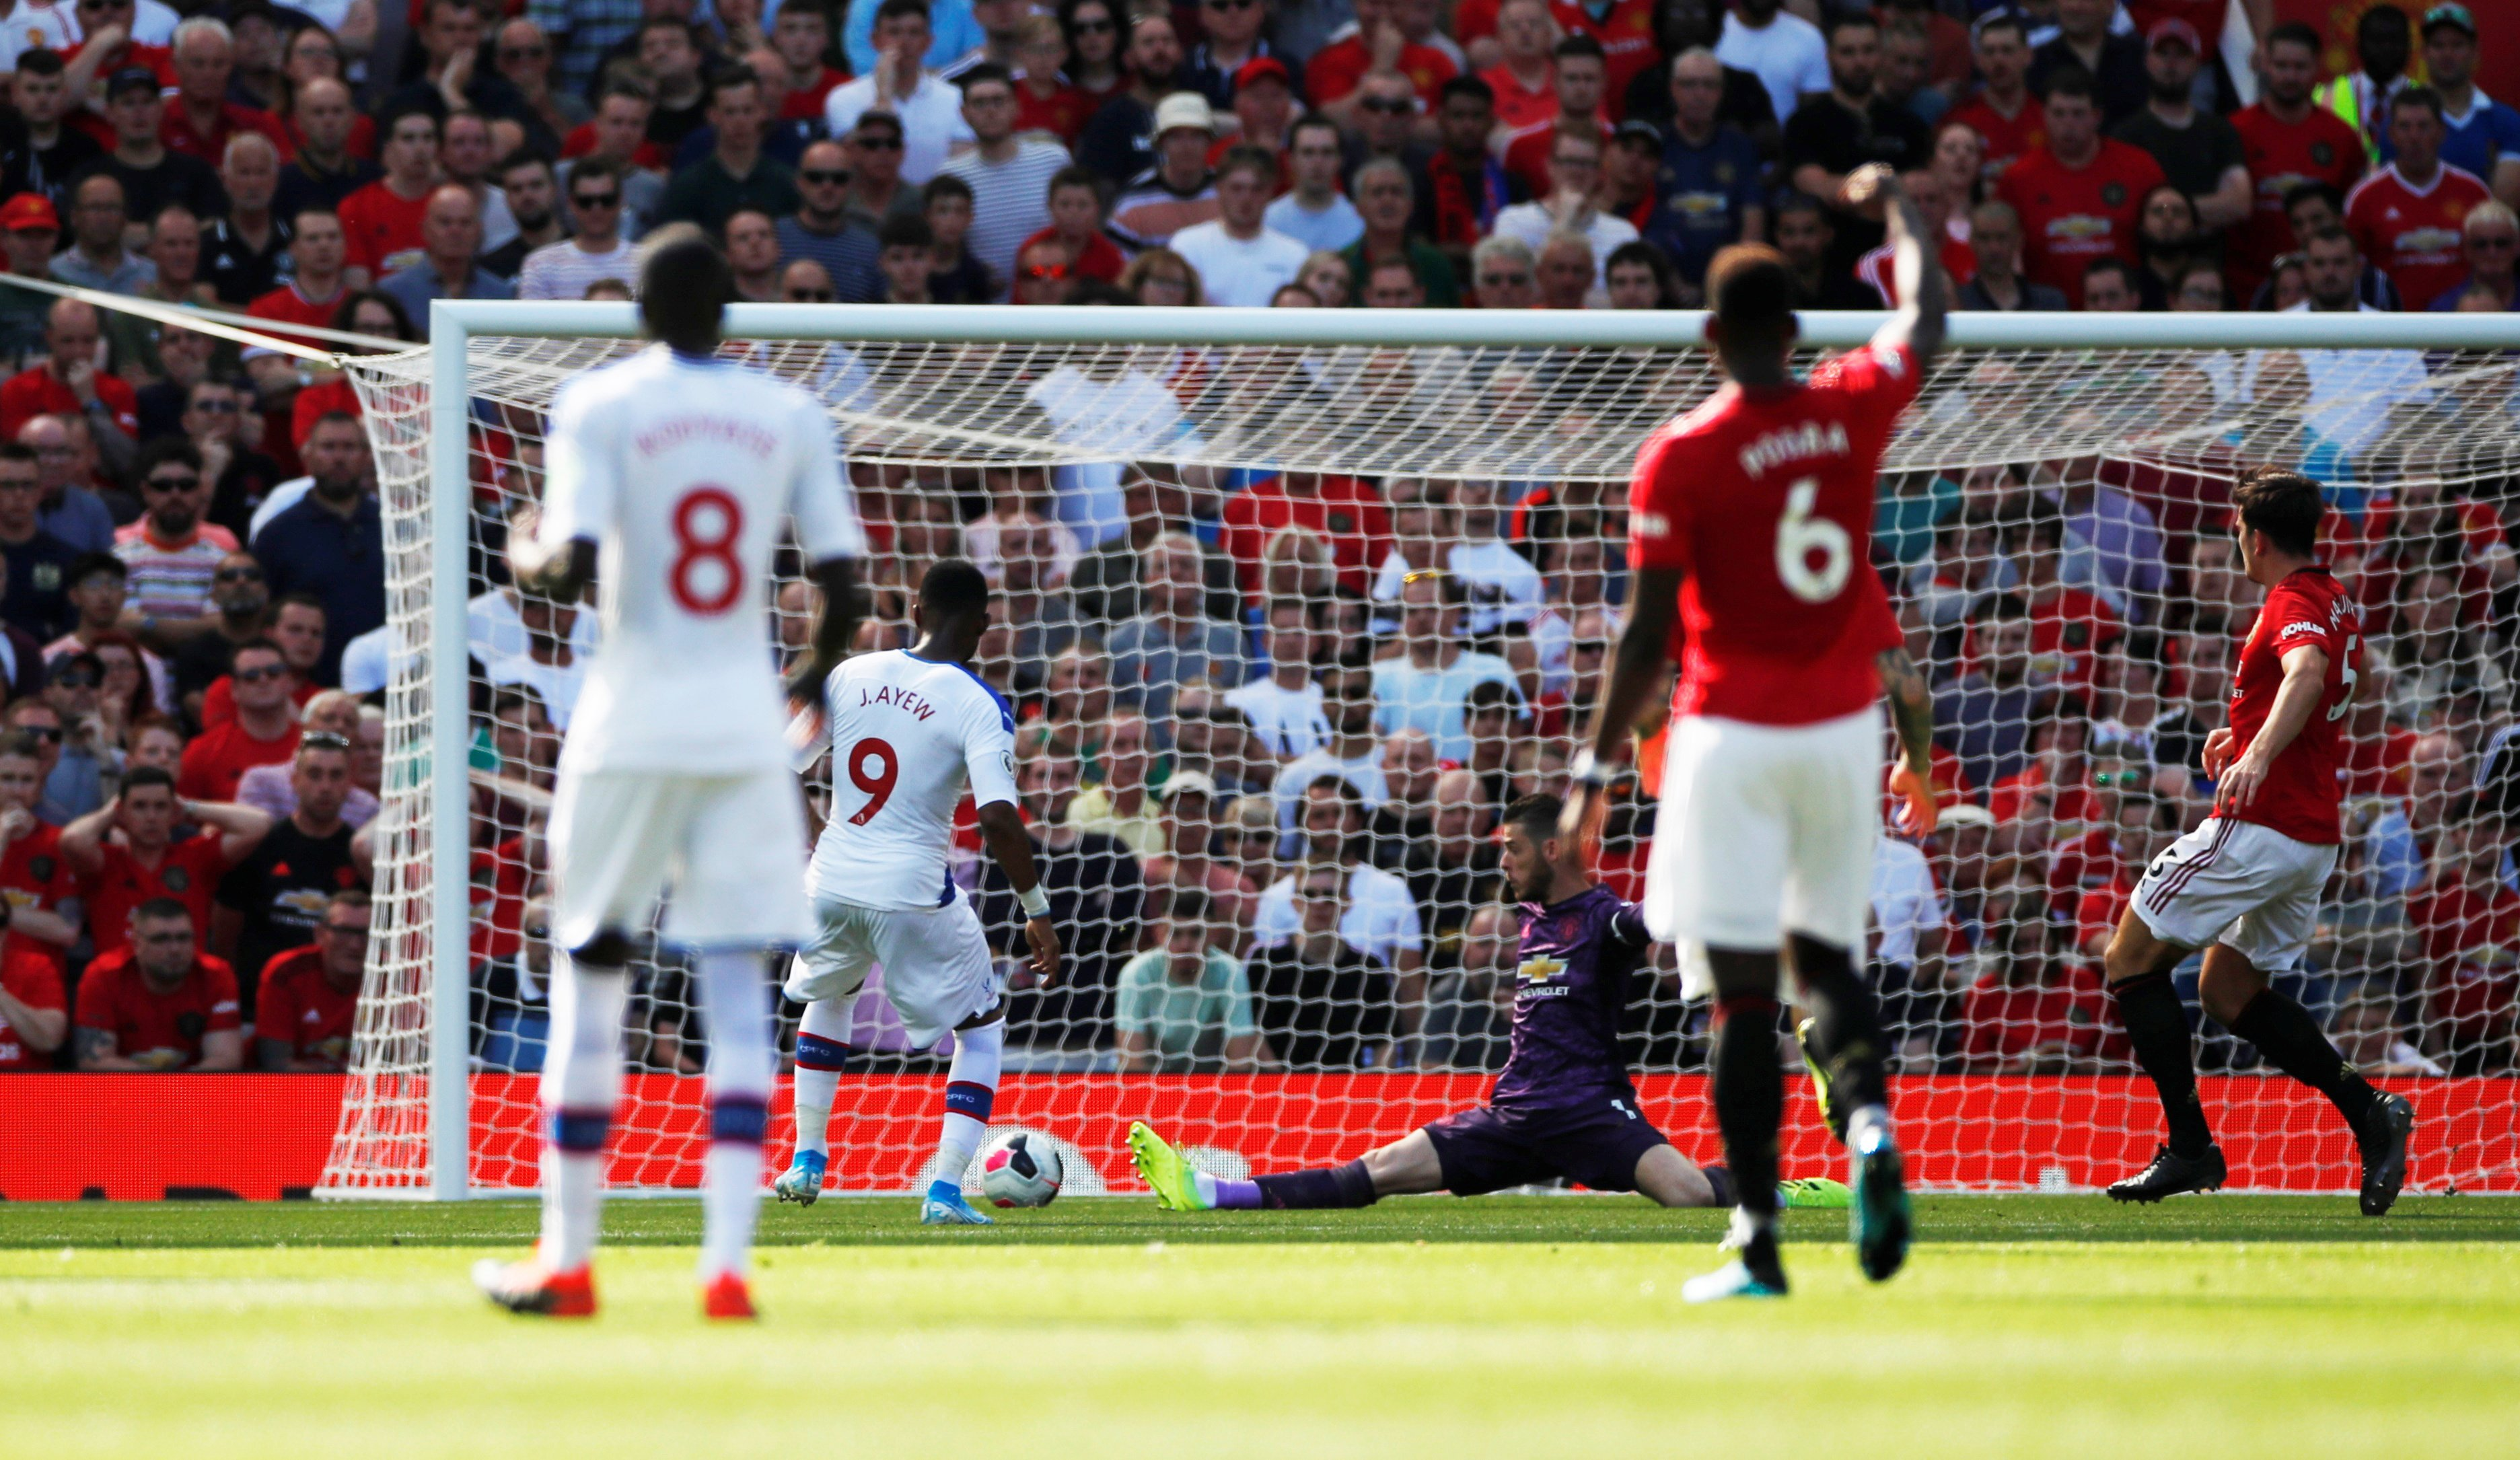 Man Utd had never lost to Crystal Palace in the Premier League before. - Bóng Đá